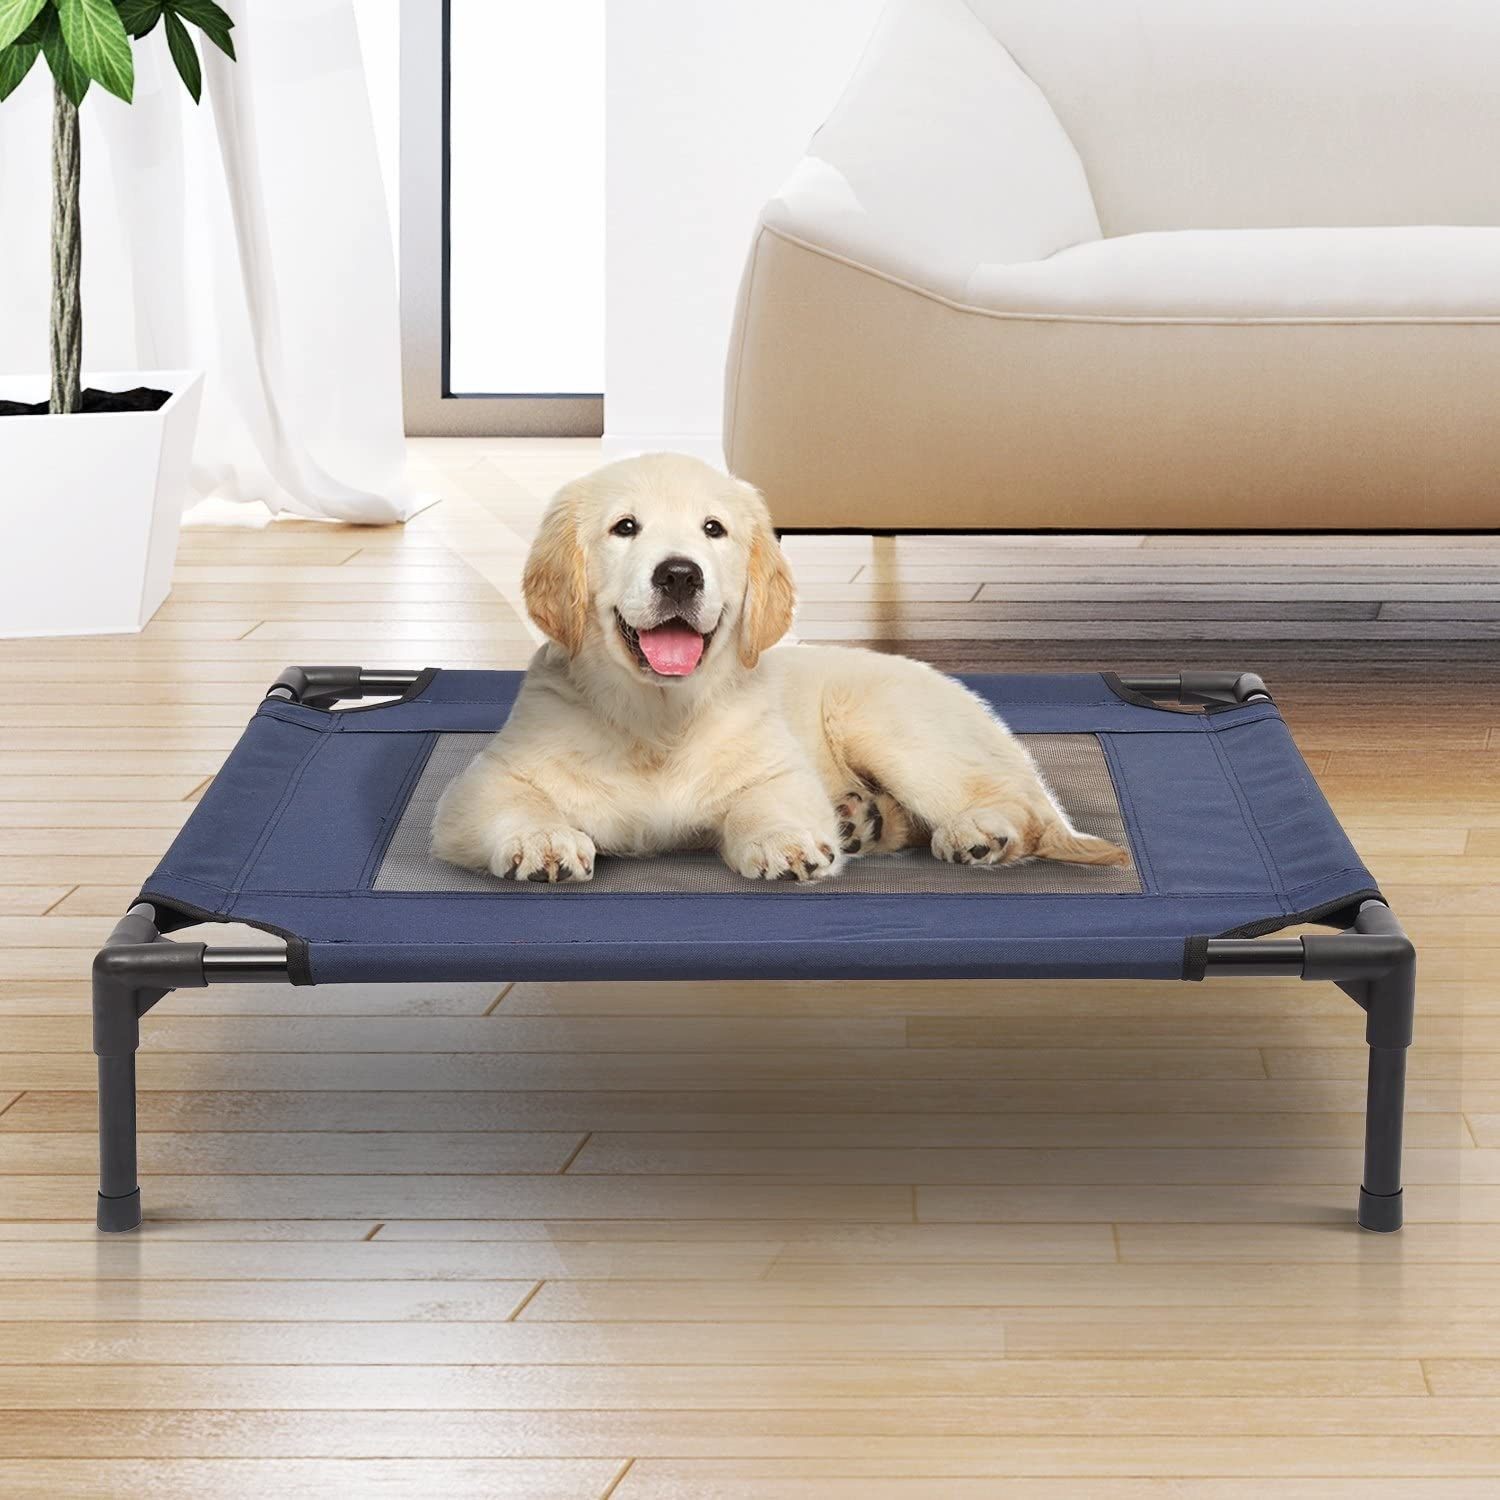 A dog on the dog cot in a living room